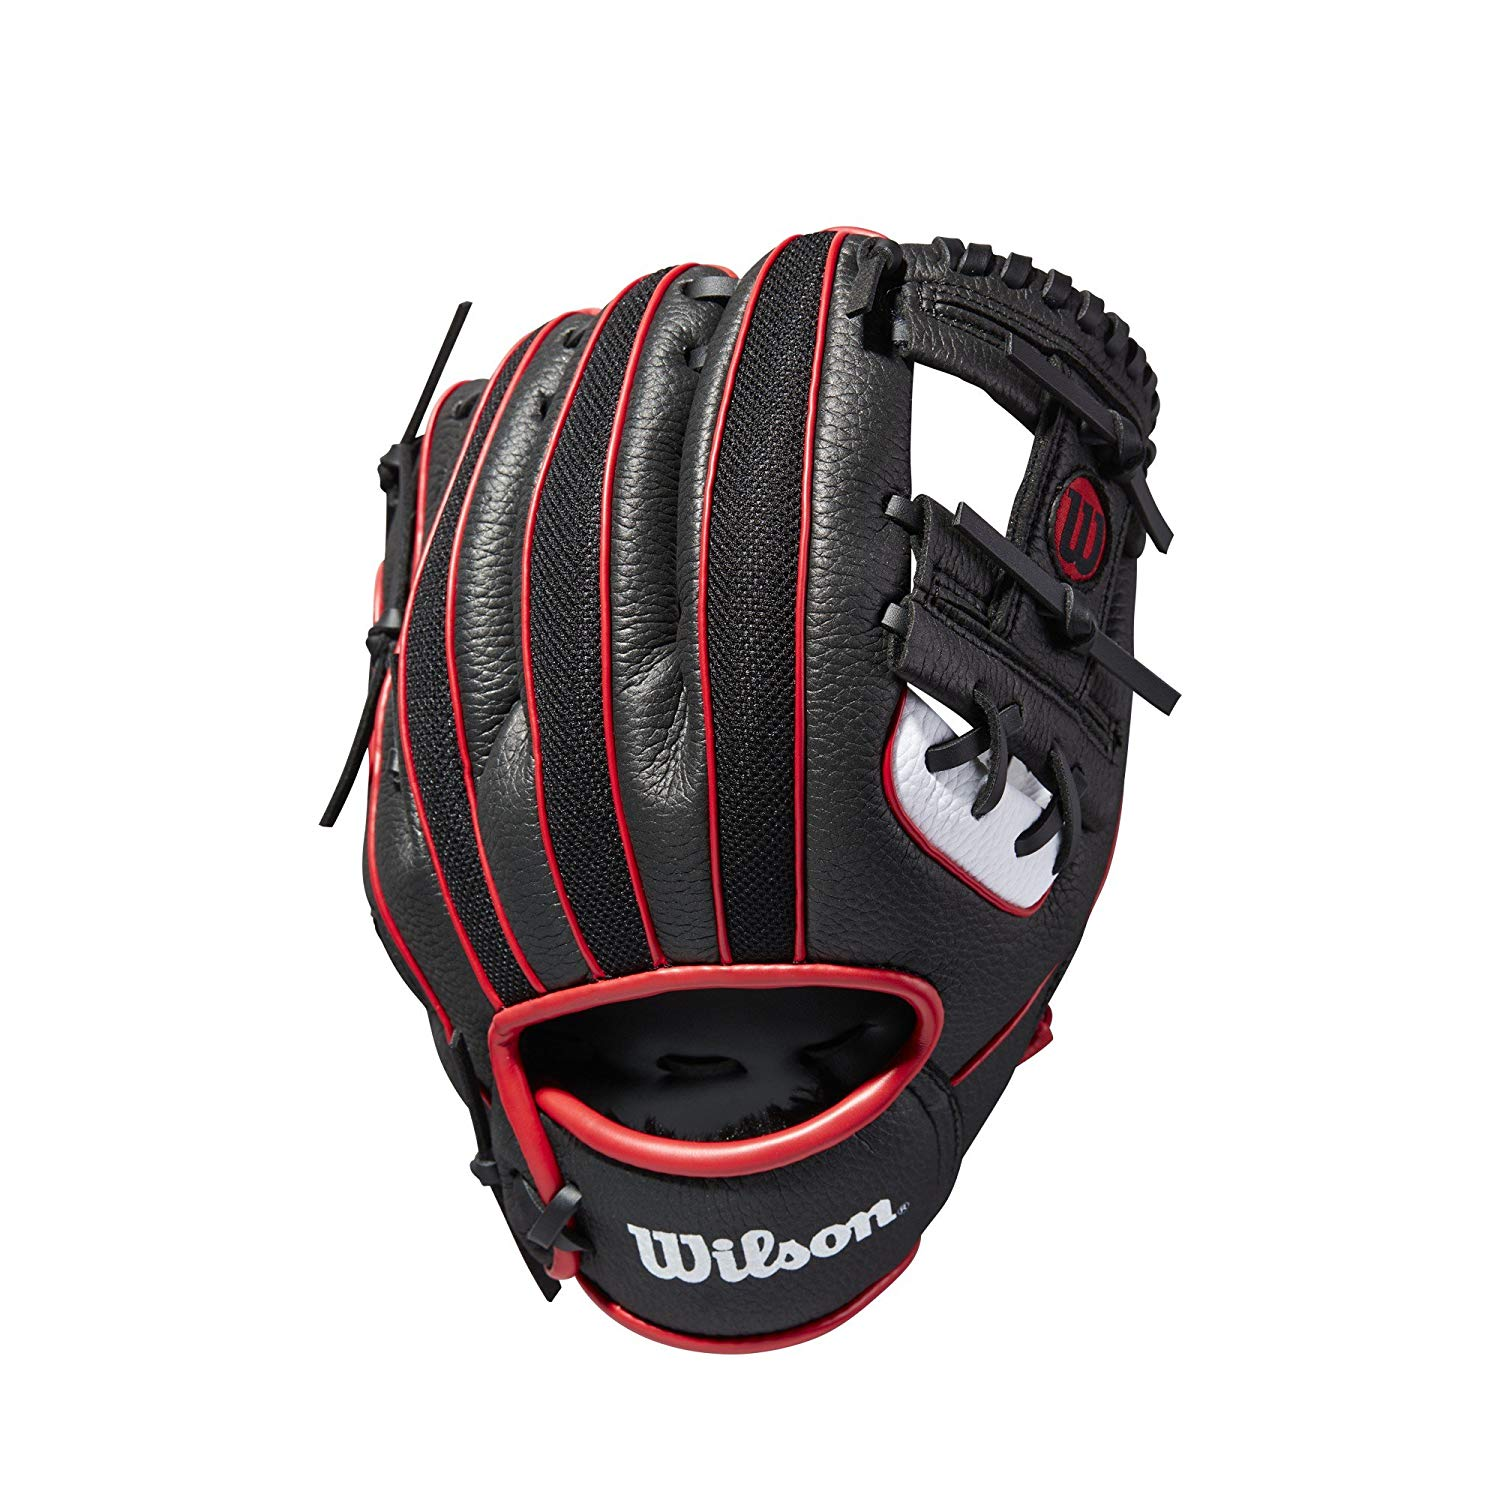 MLB A200 Tee Ball Glove for all Positions